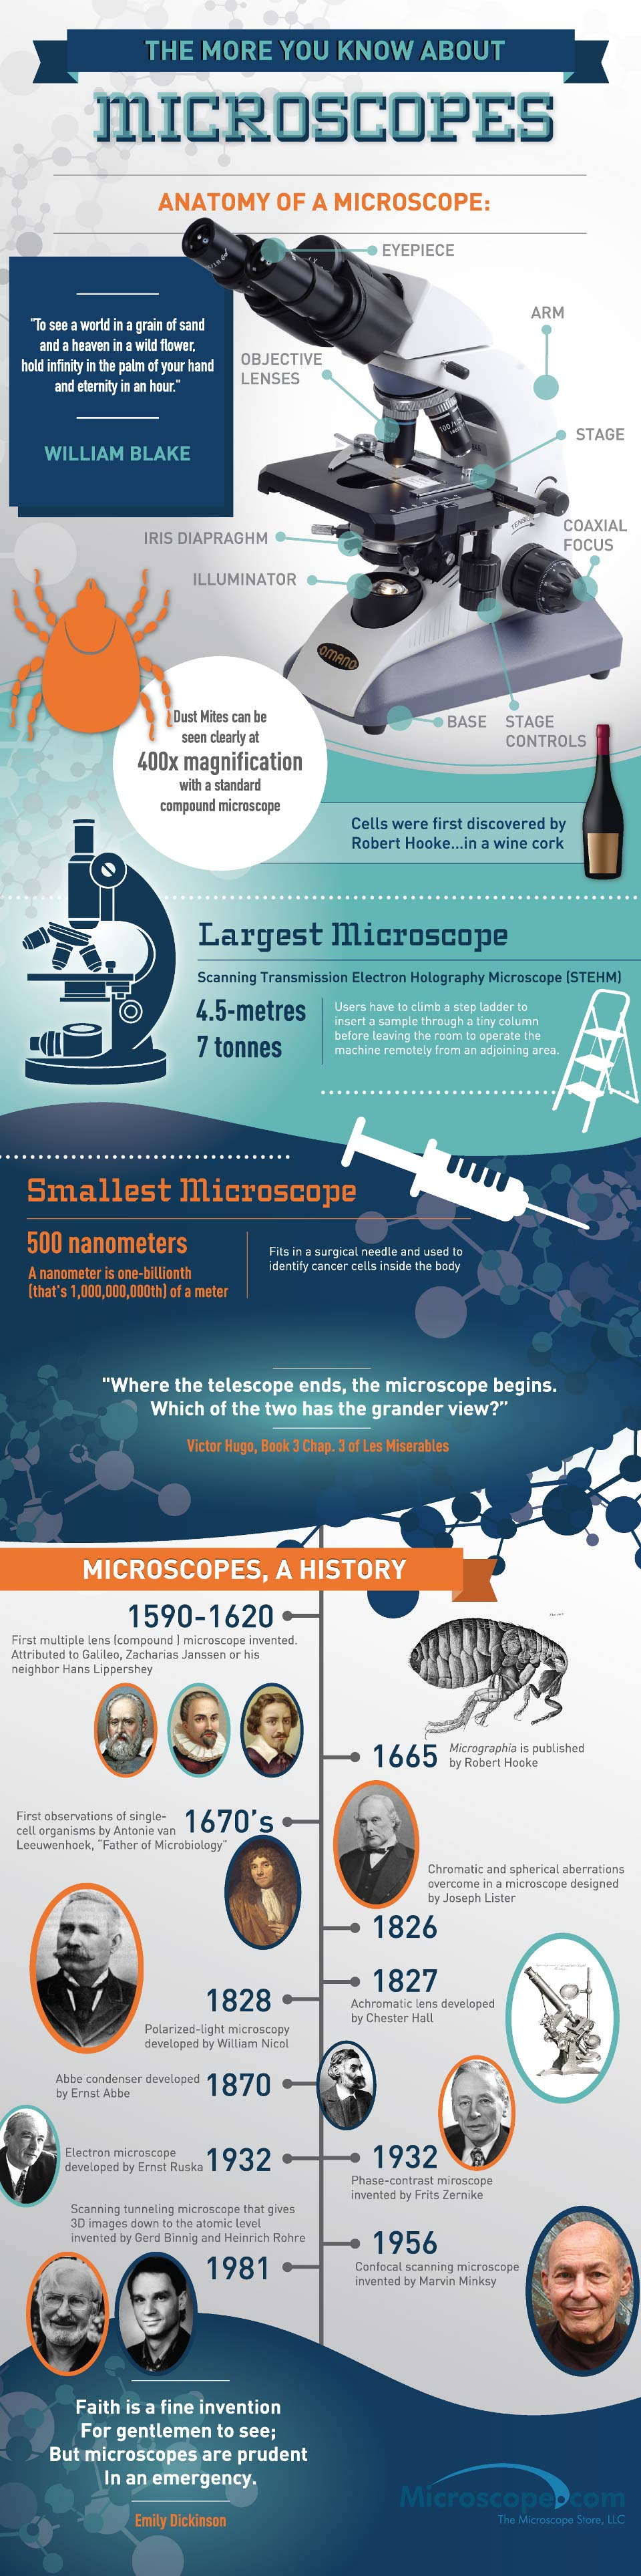 Microscopes 101-Infographic